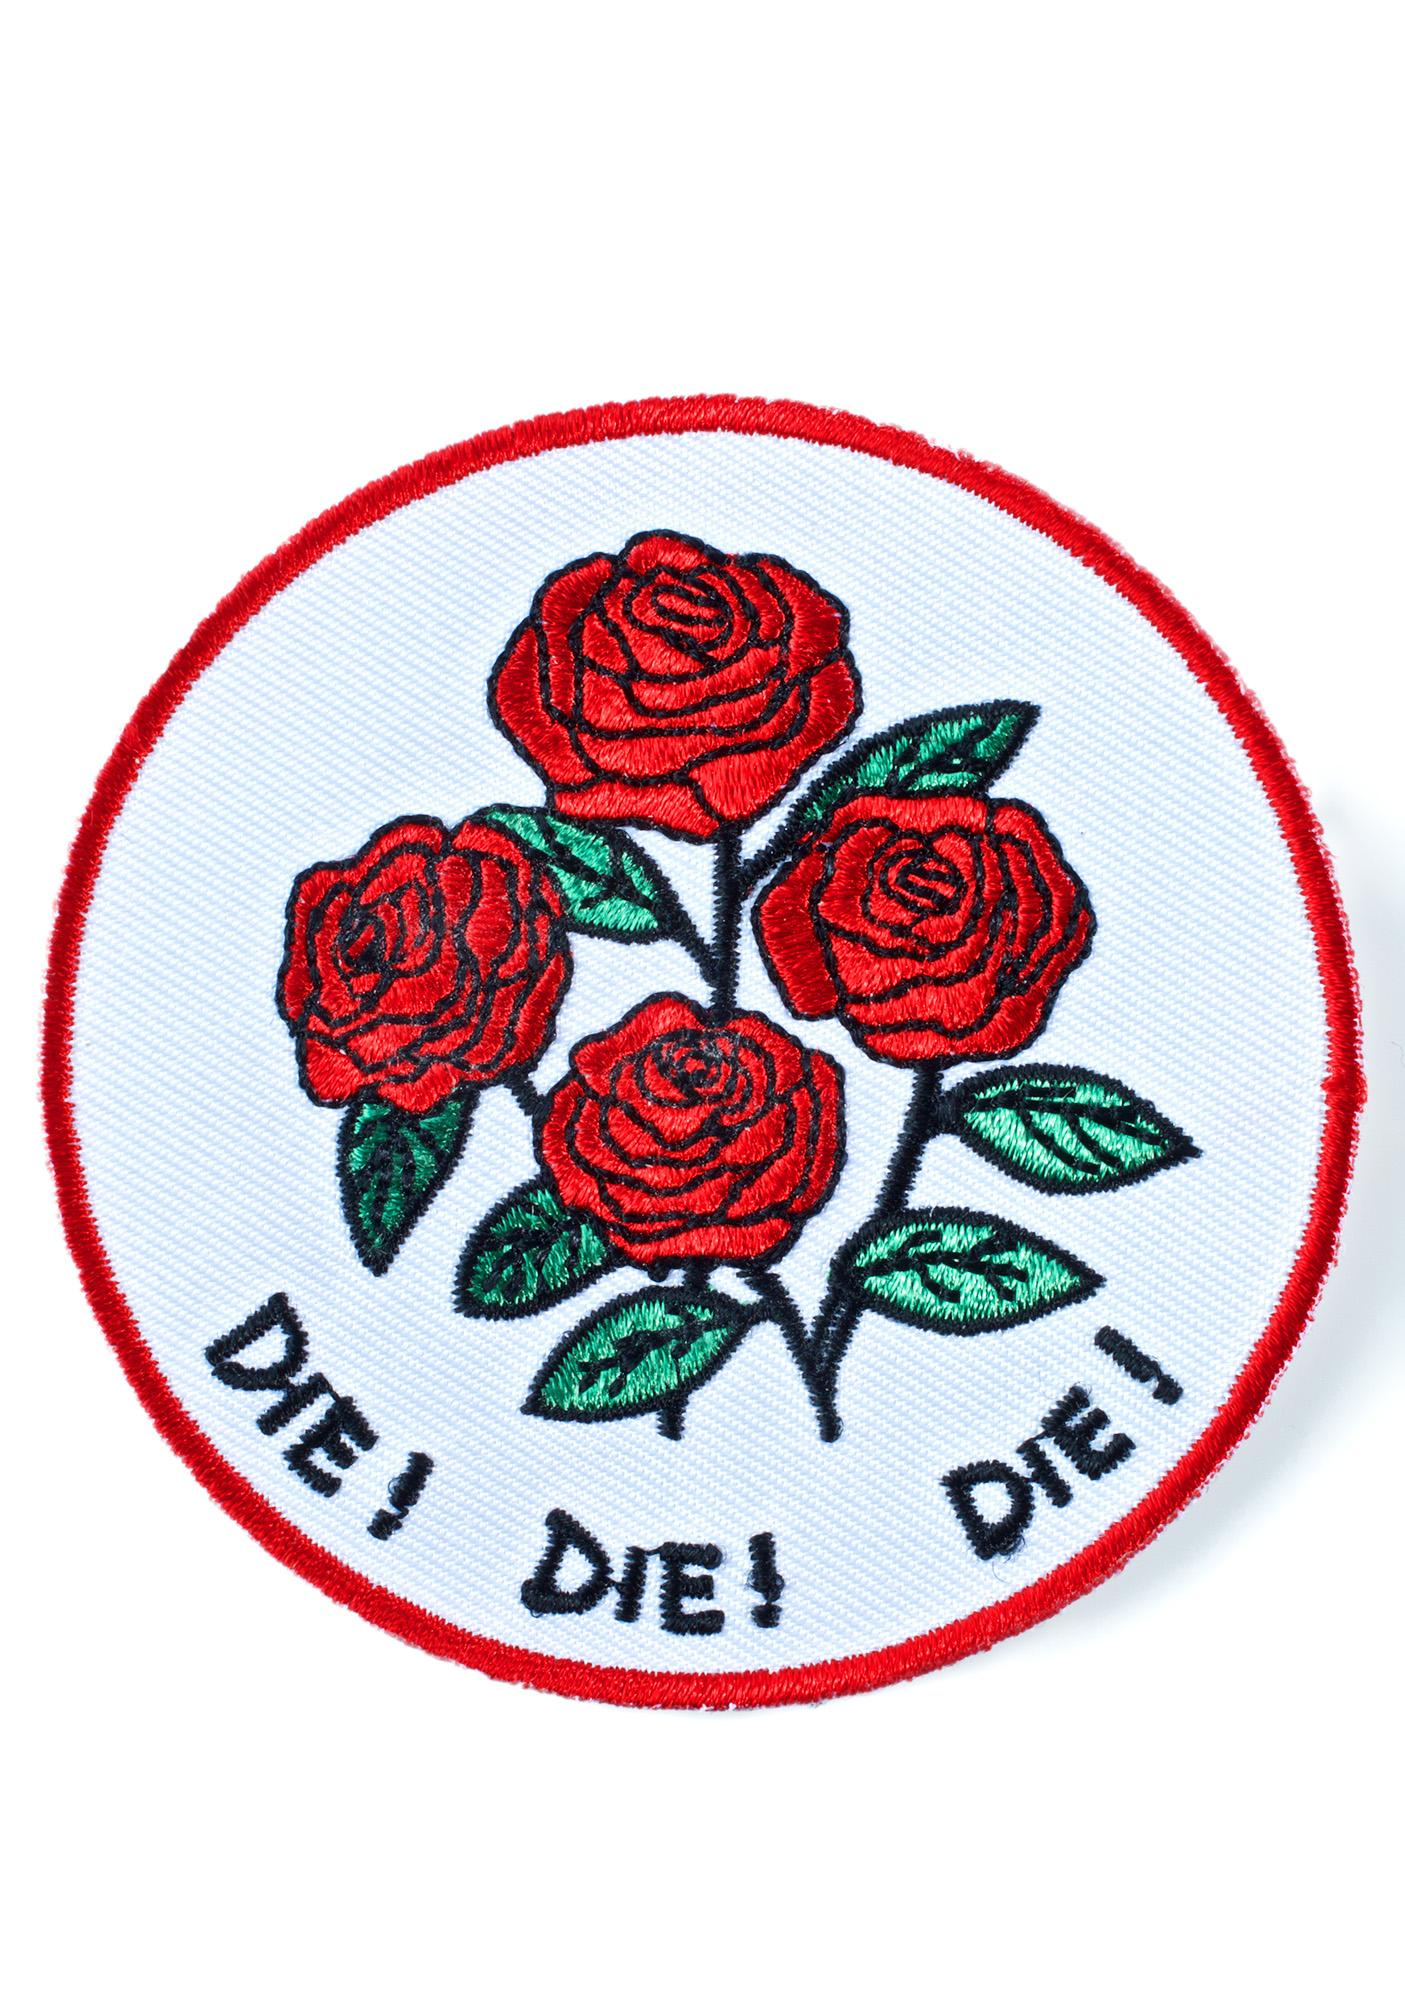 Creepy Gals Die Die Die Patch